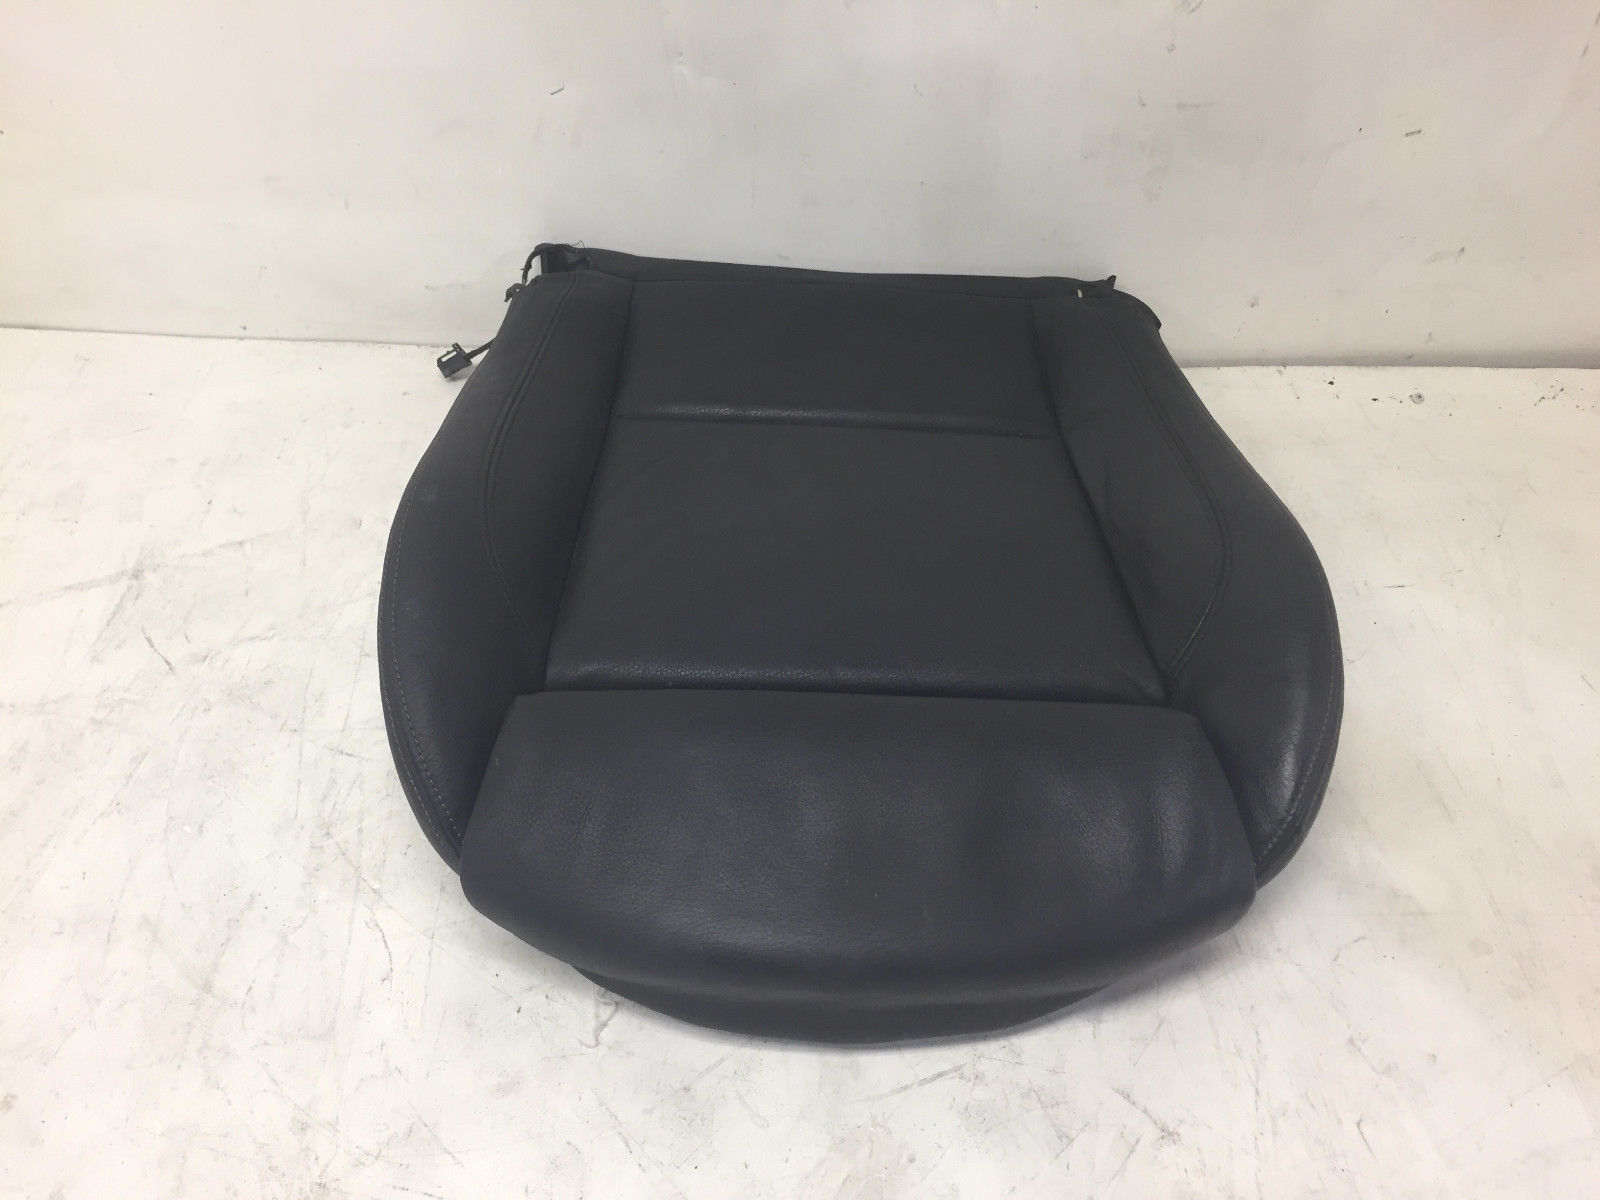 2011 BMW 325 E90 Front Left Driver Said Lower Leather Original Cover Bottom Seat